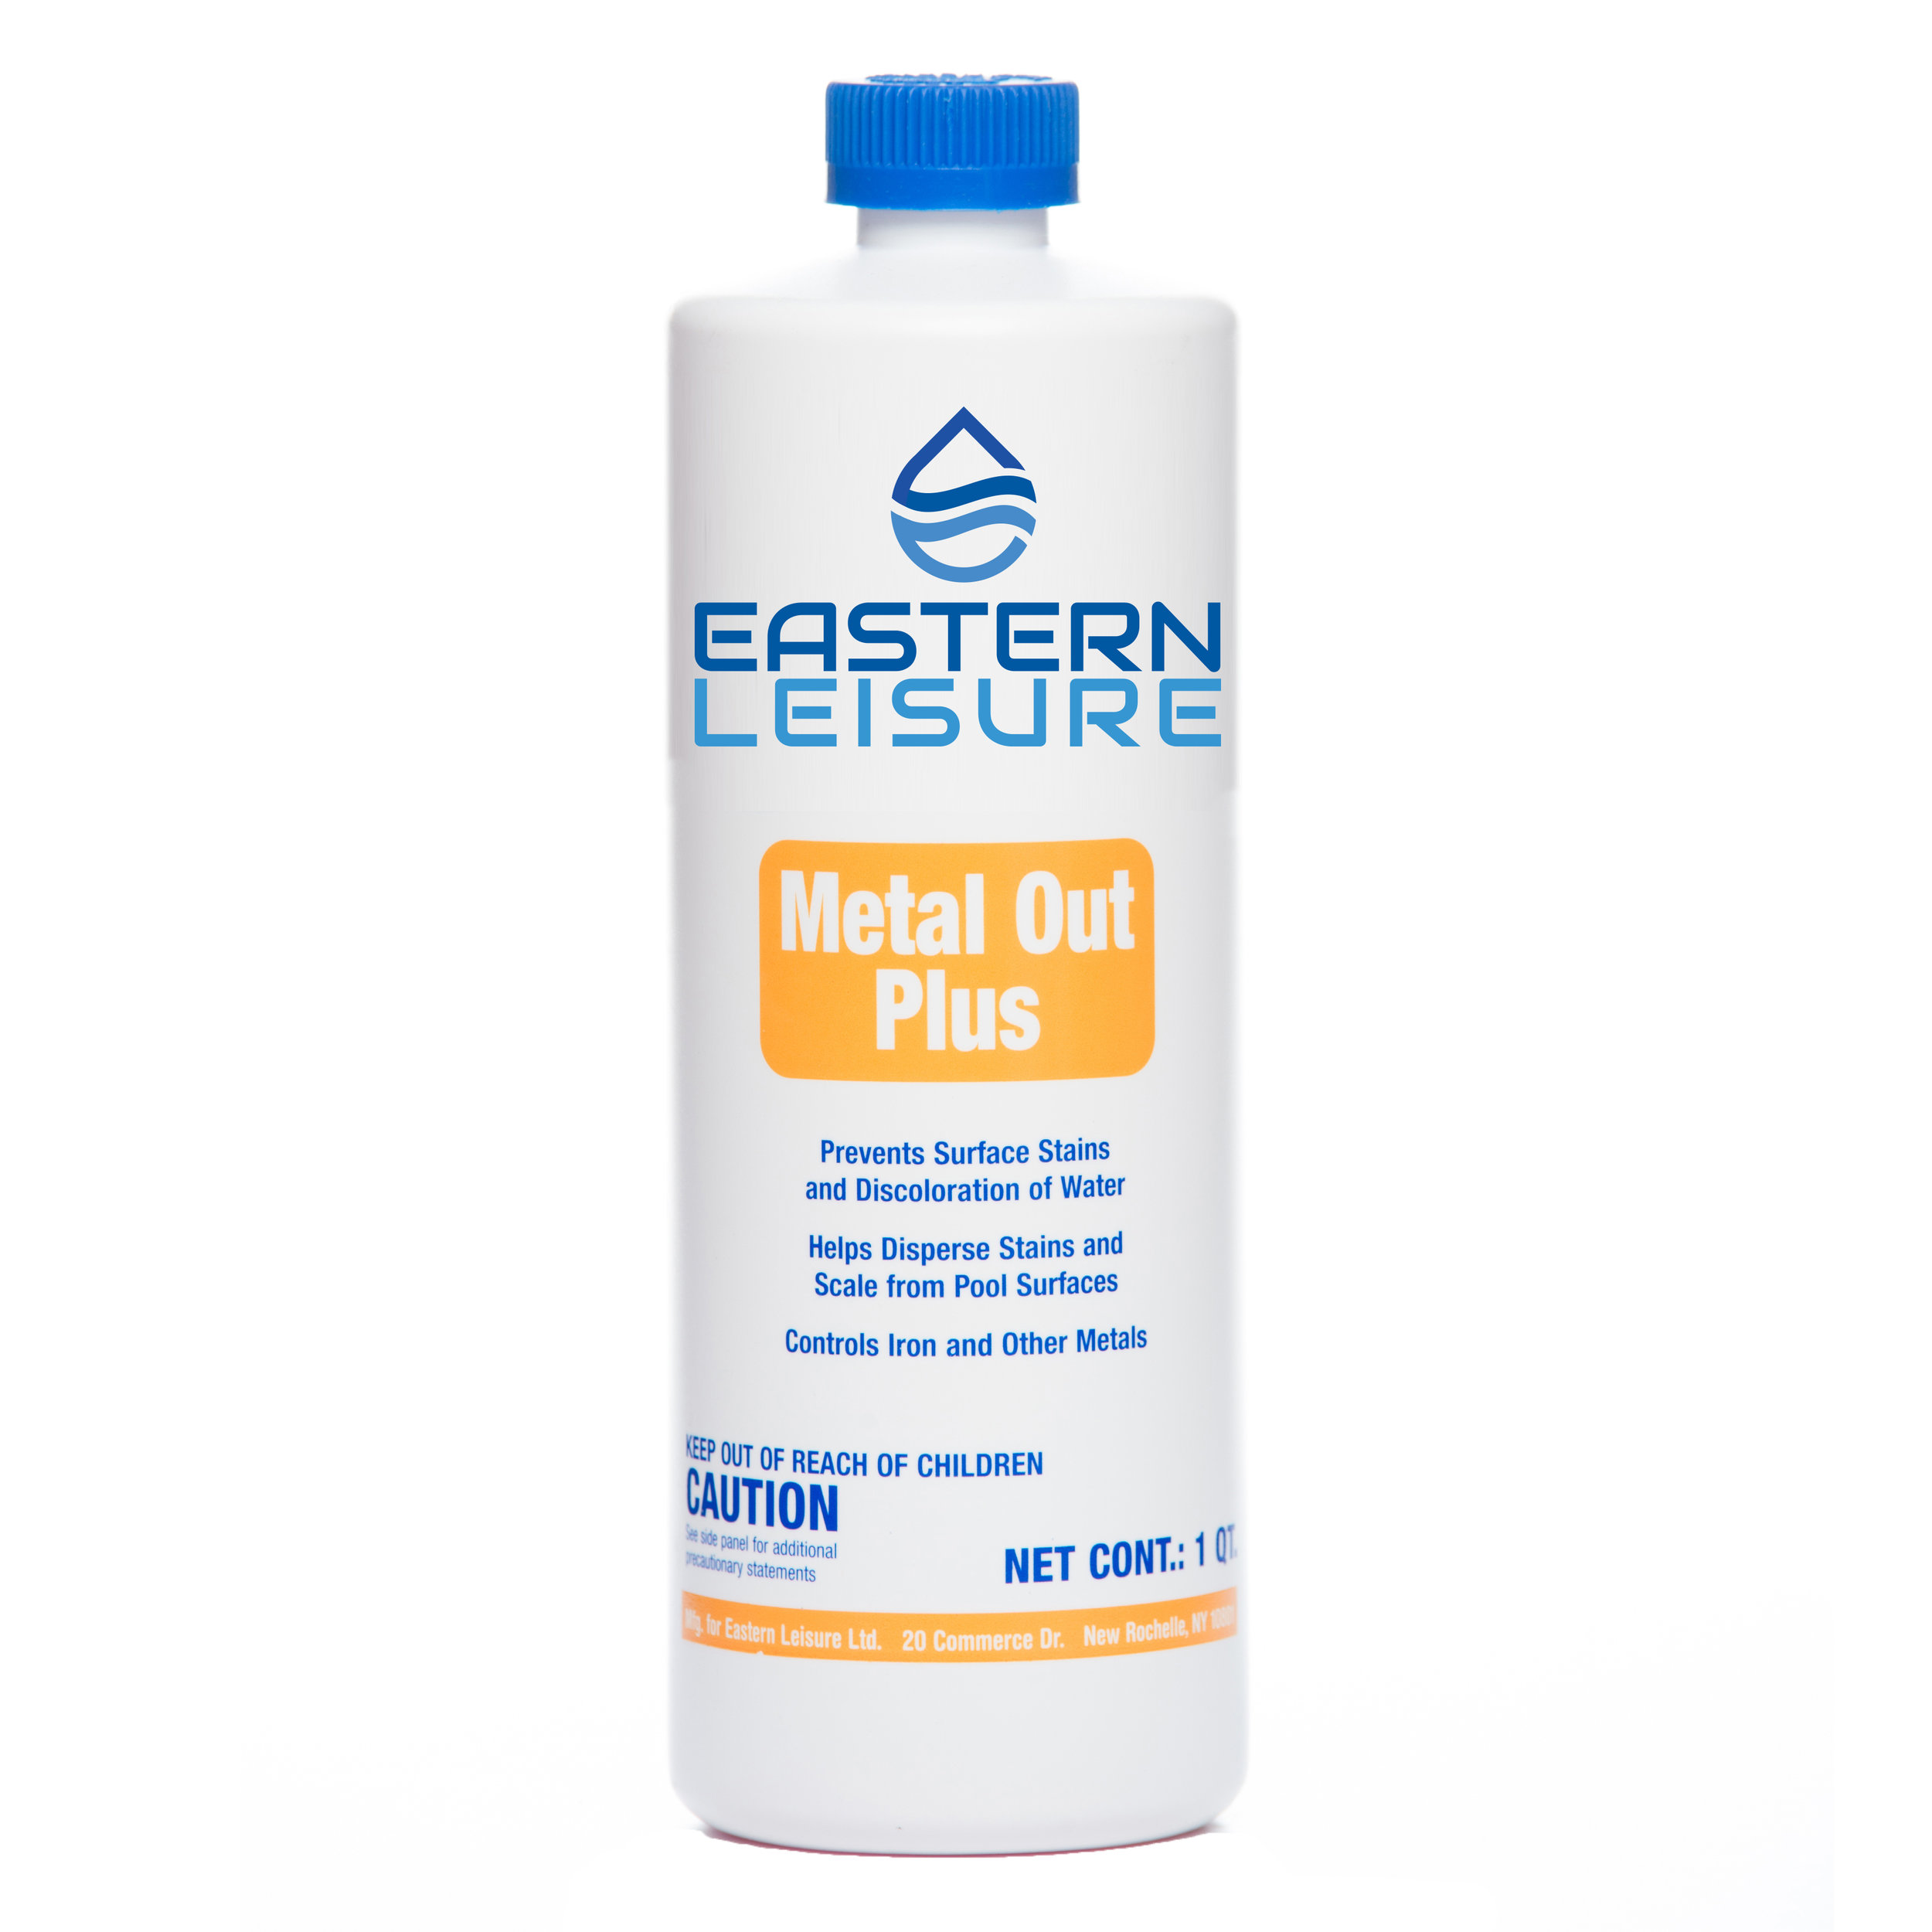 Metal Out Plus   ELP18C - 8 oz. bottle, 12/case ELP18A - 1 qt. bottle, 12/case  Removes iron, copper and other metals from pool water. Helps control and prevent staining and water discoloration.  Initial dosage: 15 oz. per 10,000 gal. Maintenance dosage: 5 oz. per 10,000 gal.